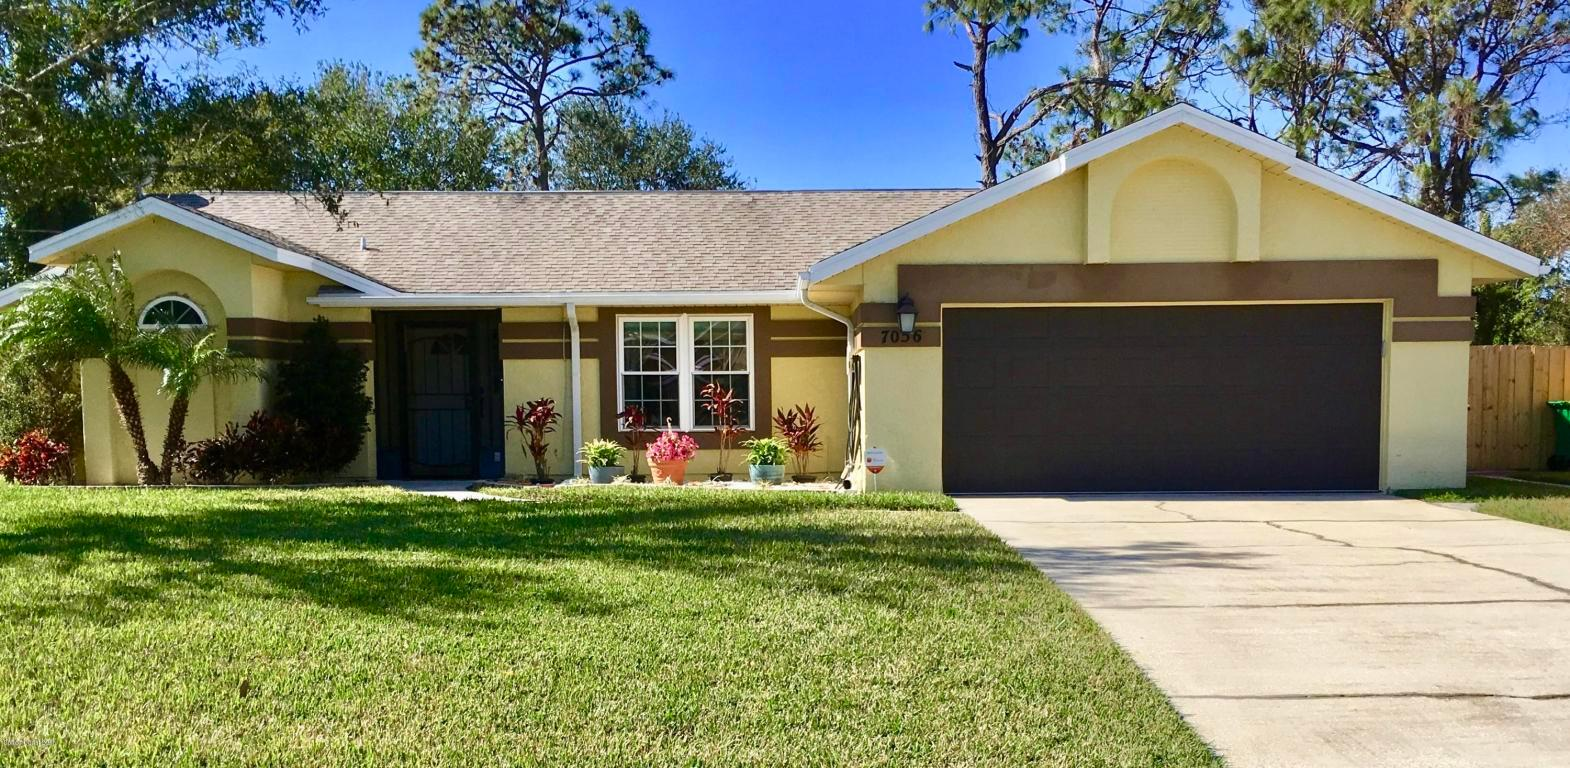 7056 Holly Ave Cocoa Fl Mls 802632 Better Homes And Gardens Real Estate